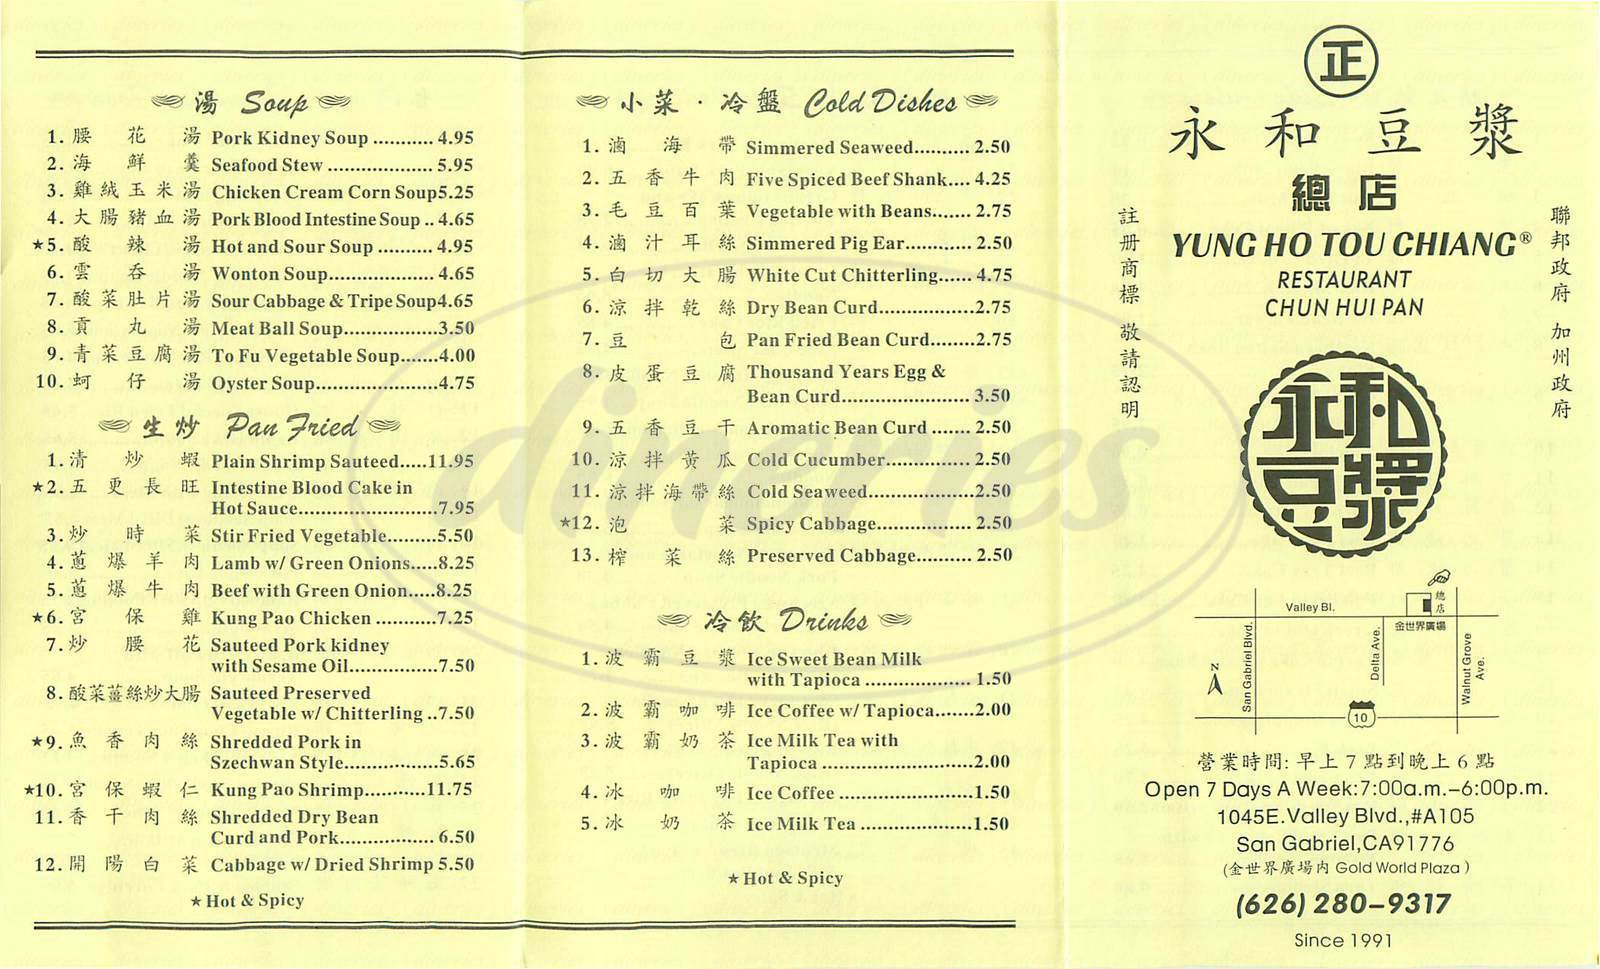 menu for Yung Ho Tou Chiang